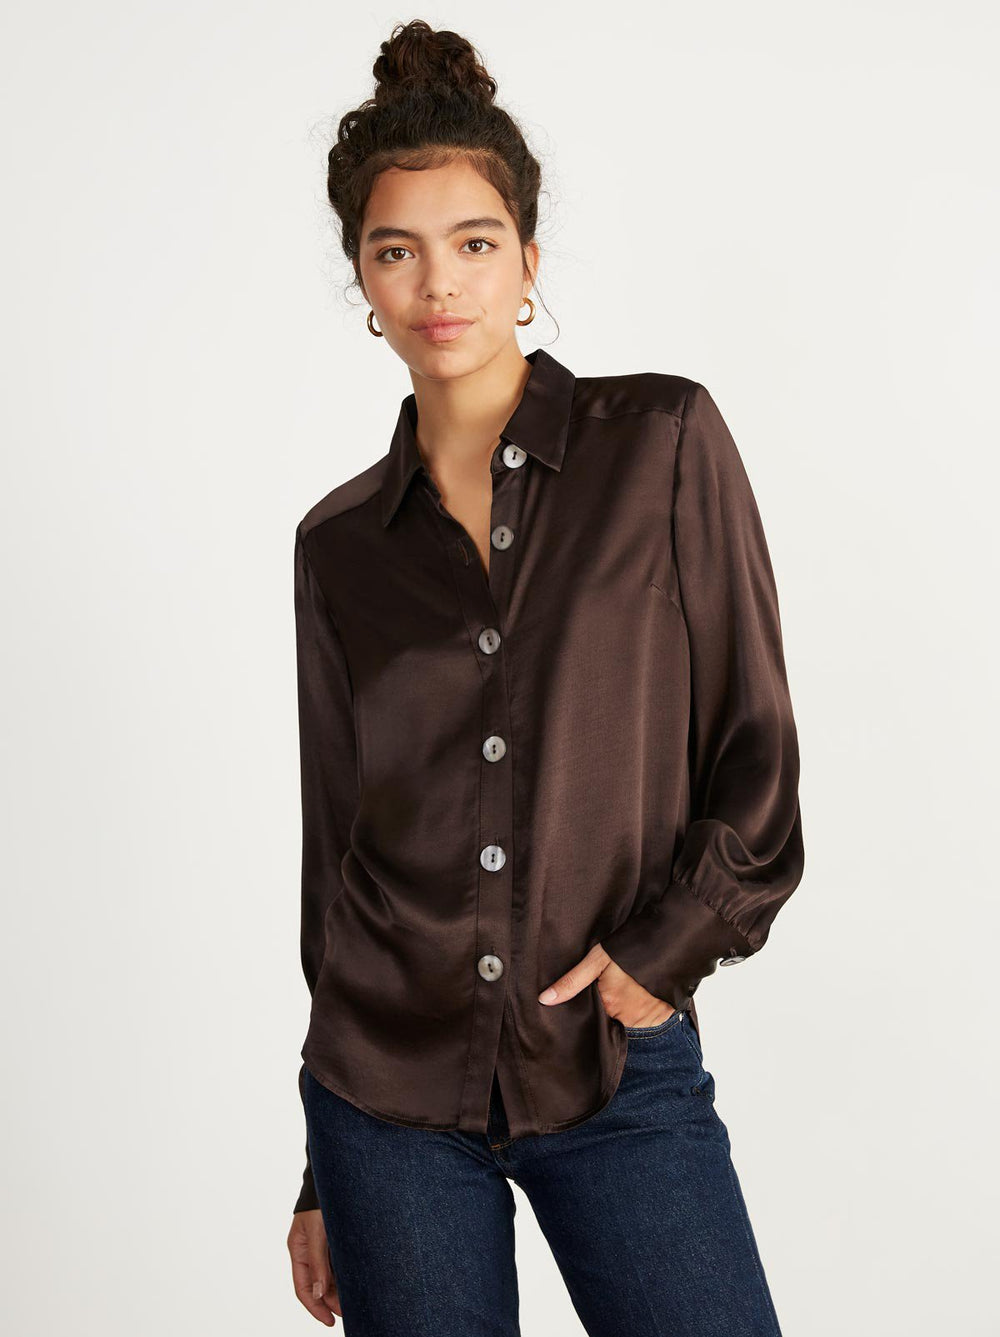 Joanna Chocolate Blouse by KITRI Studio